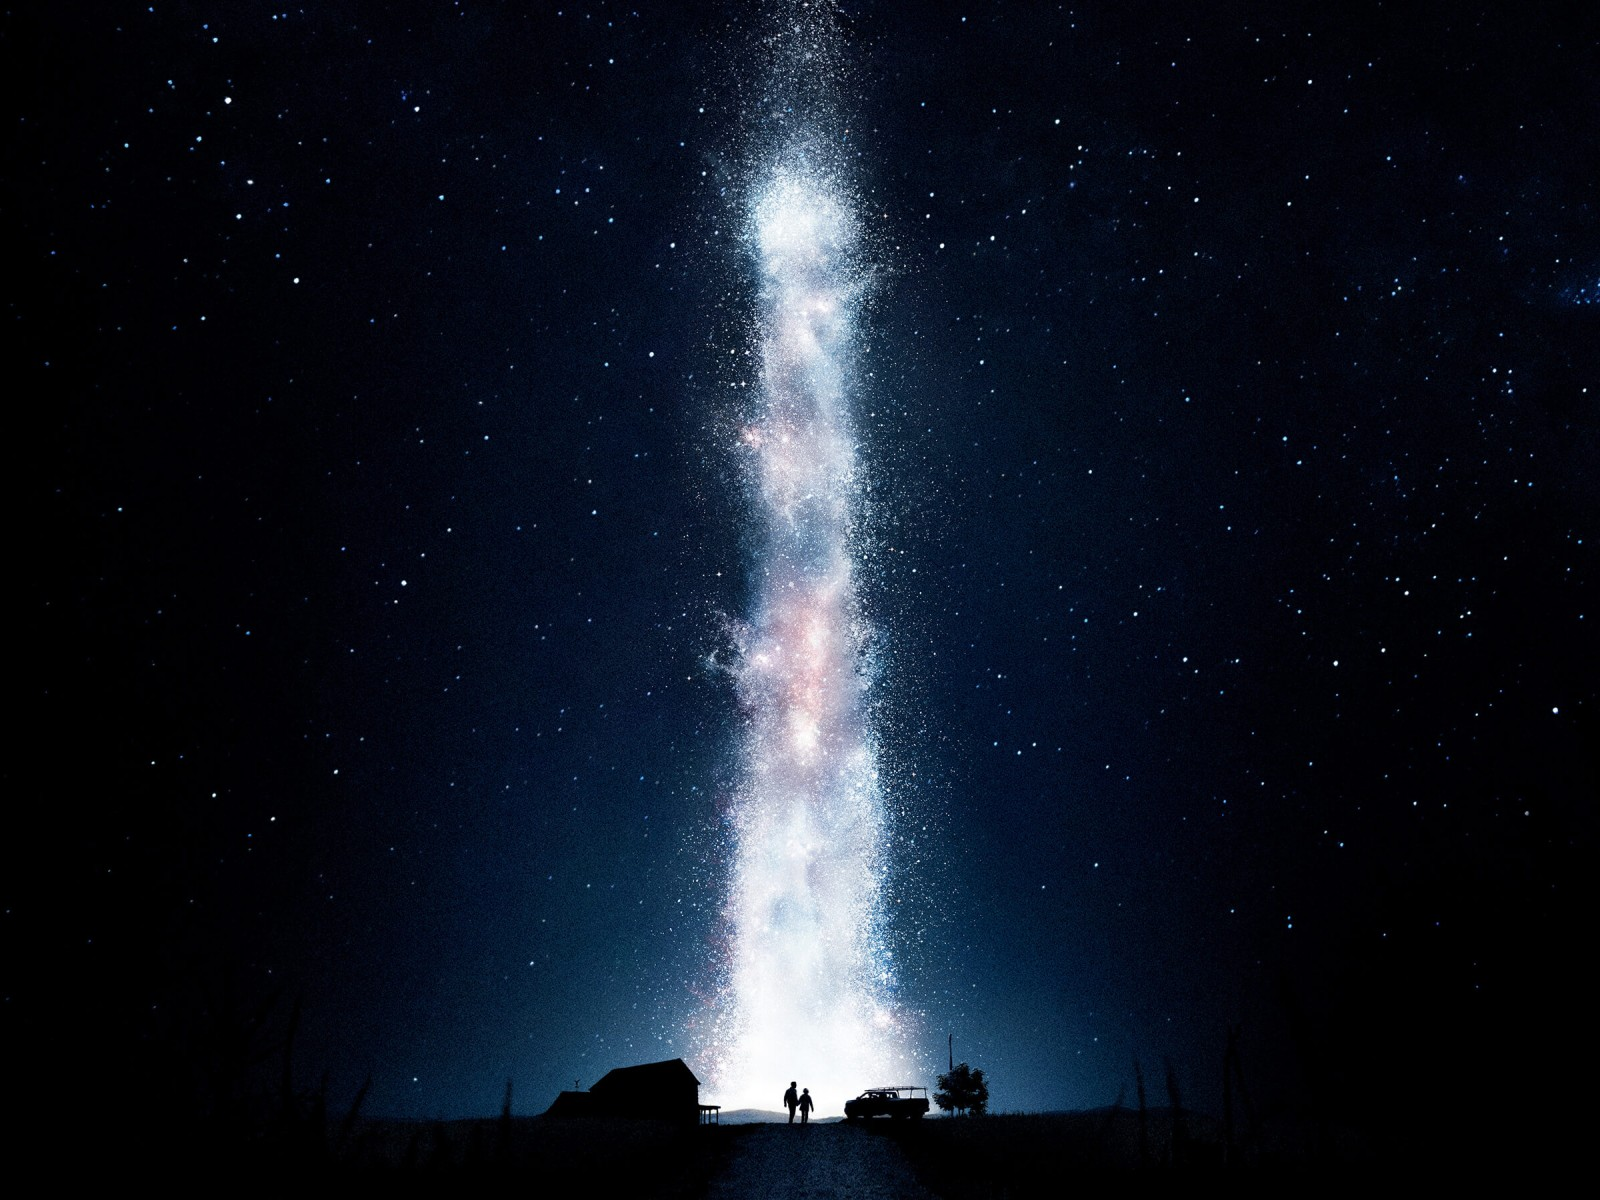 Interstellar 2014 HD wallpaper for 1600 x 1200   HDwallpapersnet 1600x1200